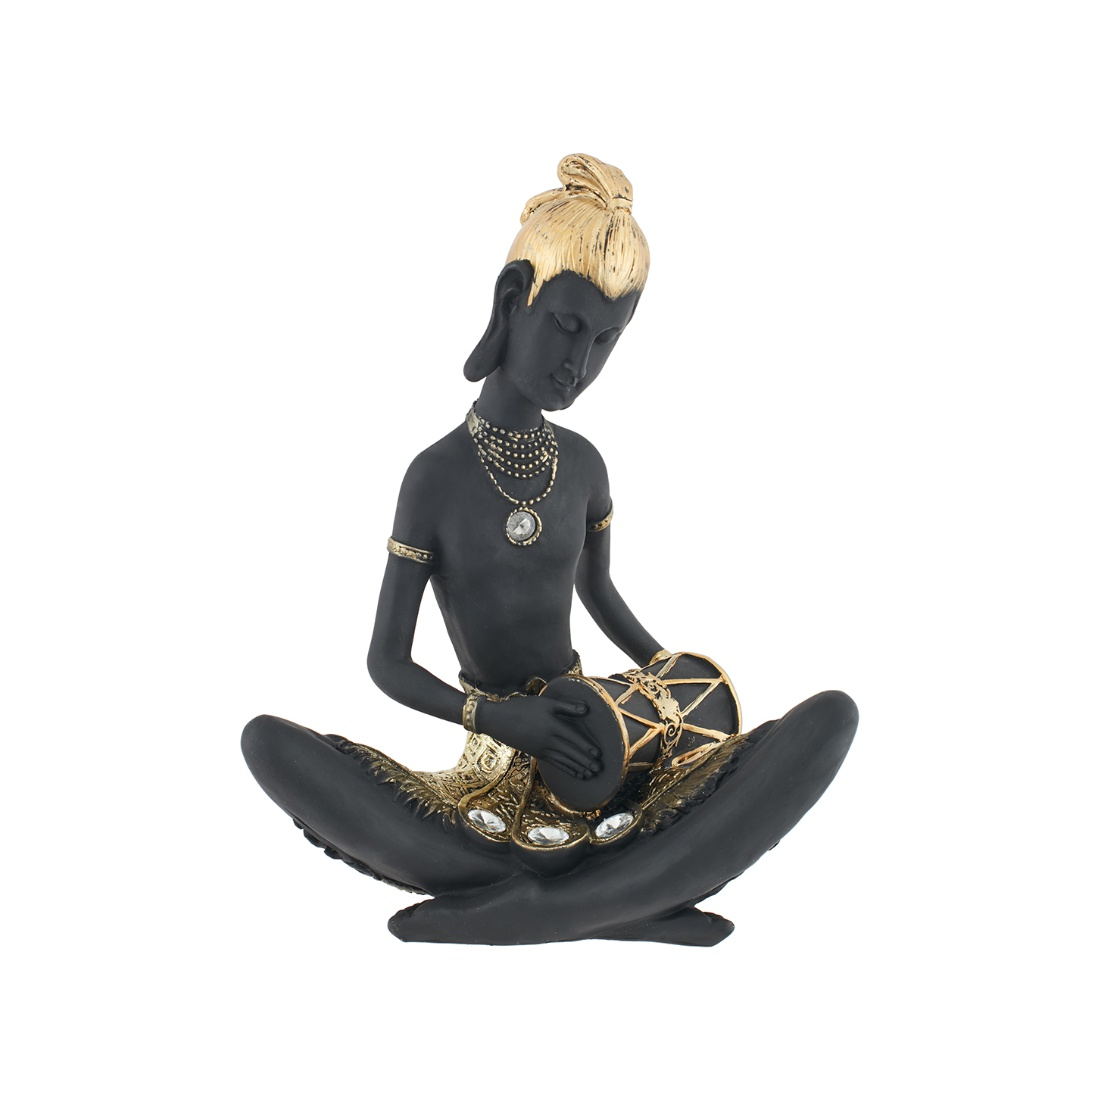 Fio Sitting Music Figurine Black Polyresin Figurines in Black Colour by Living Essence